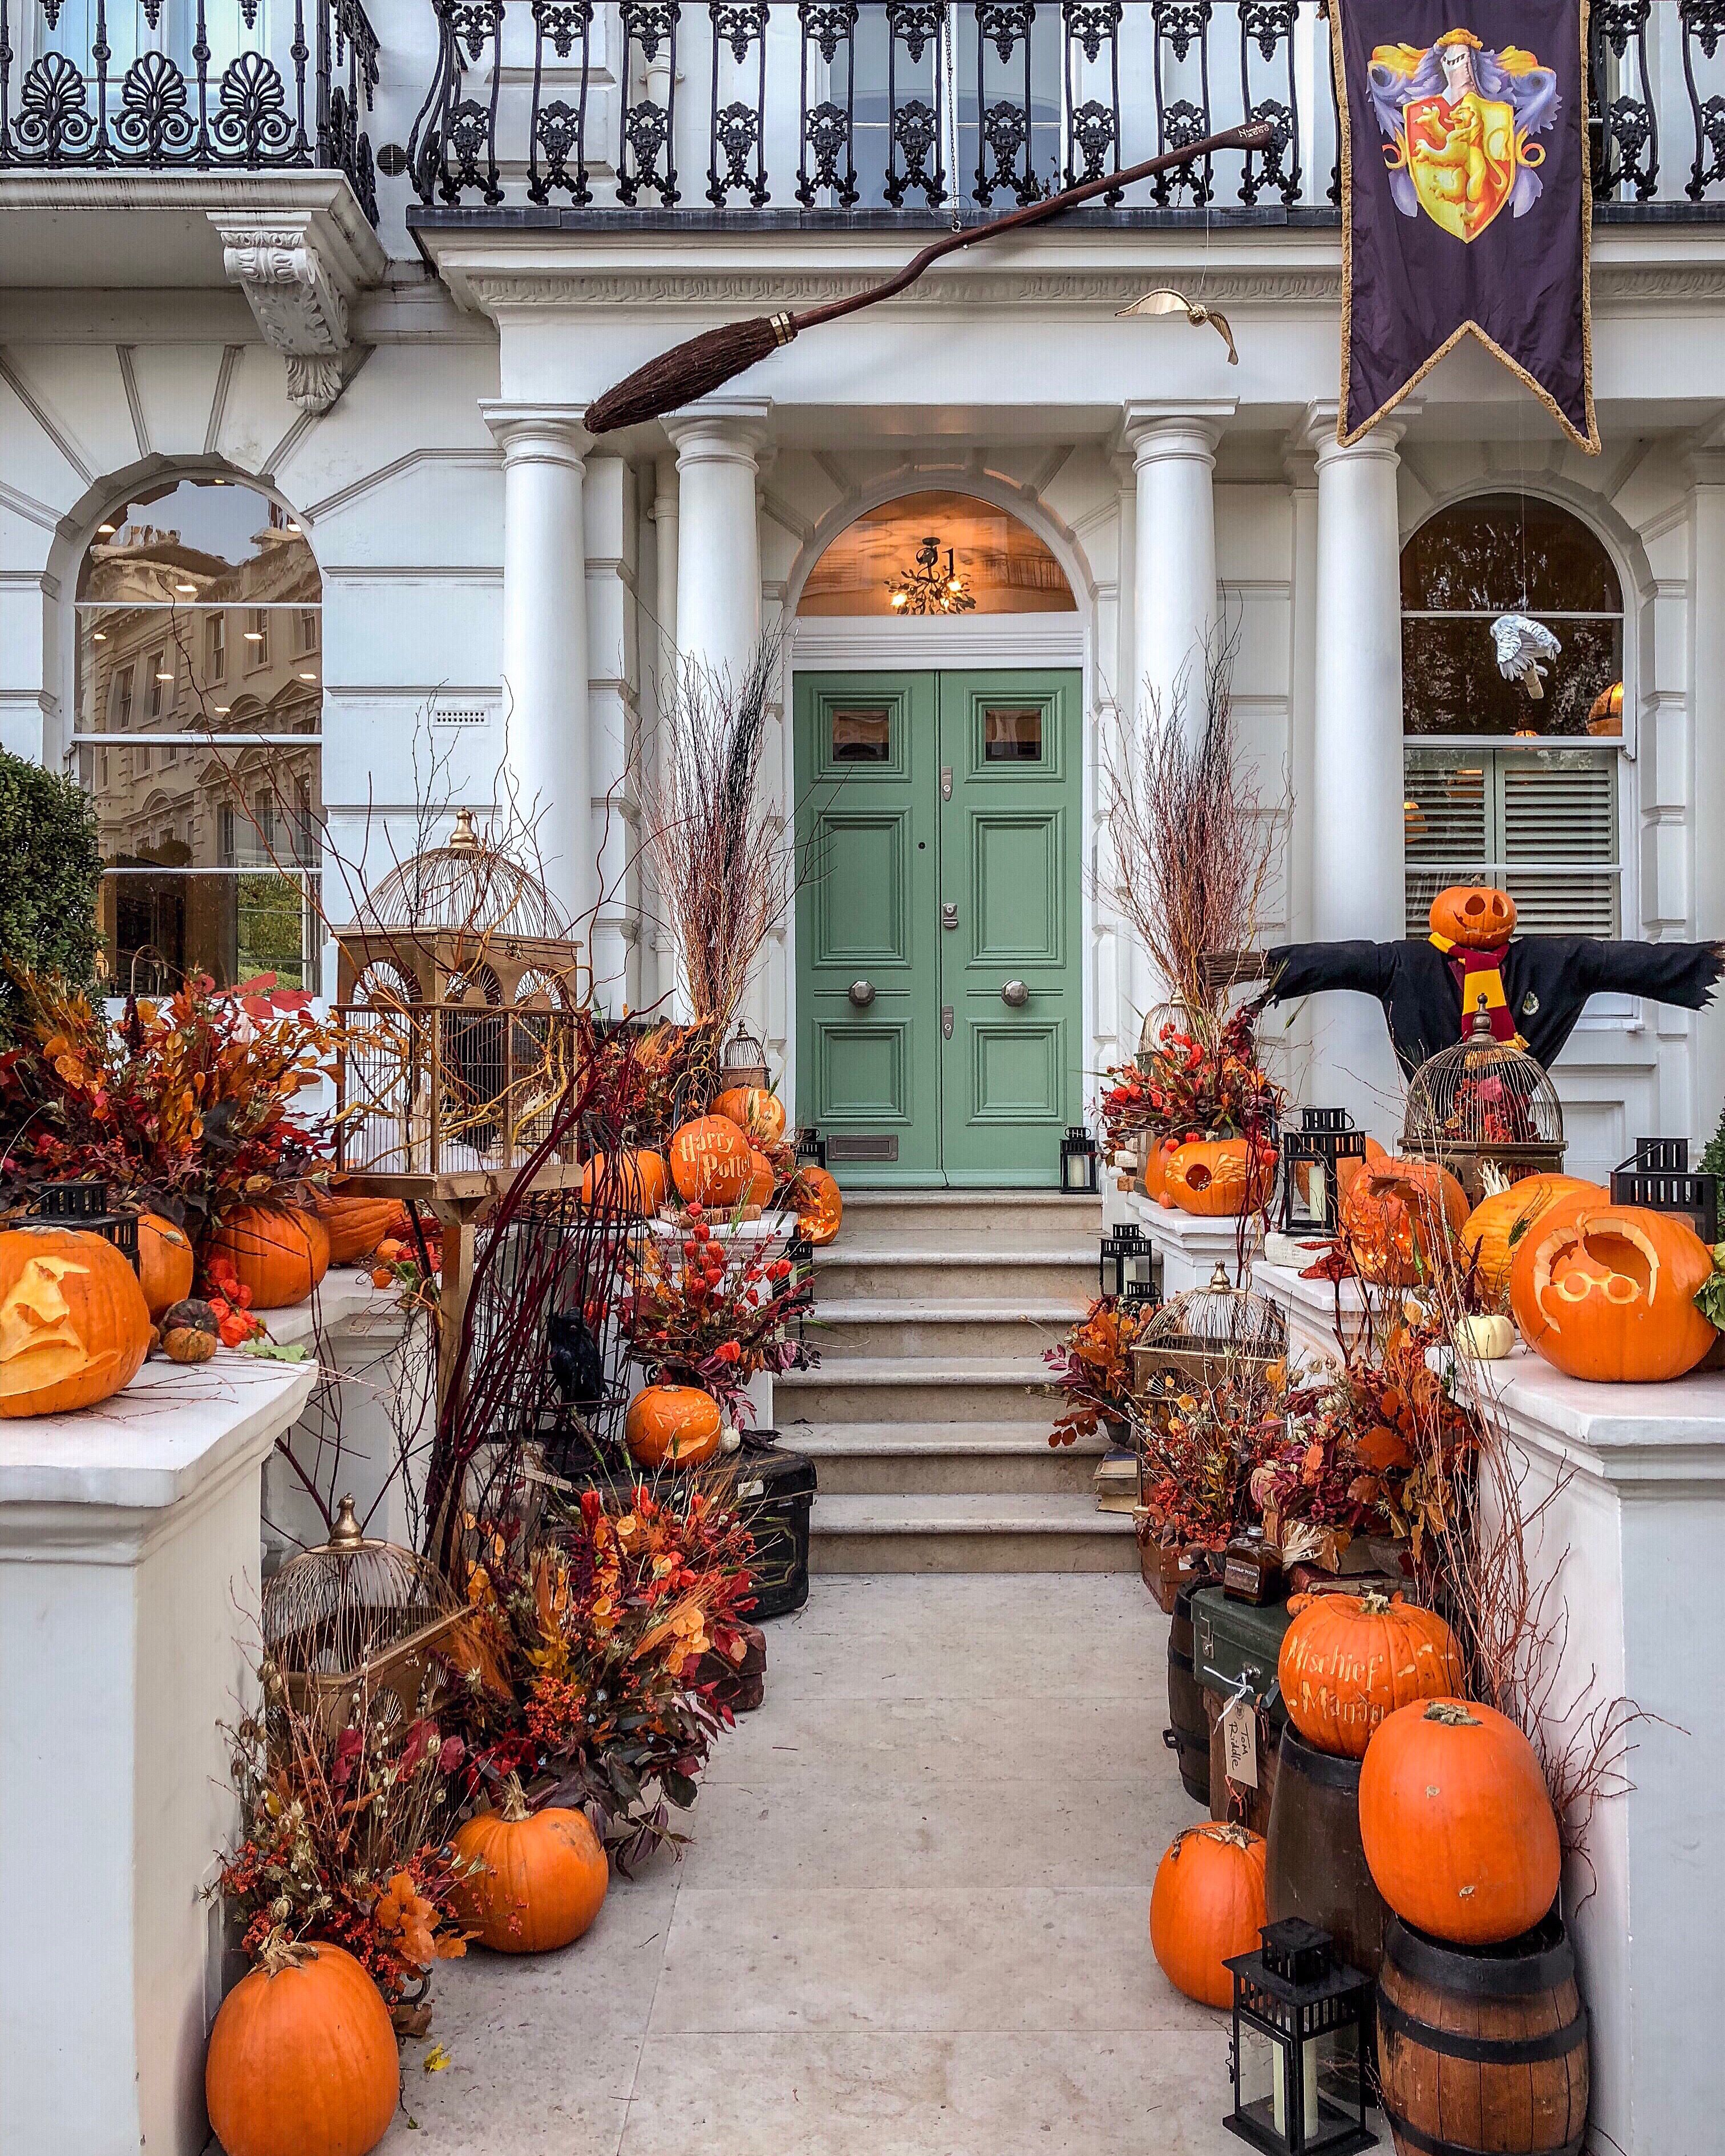 50 Diy Halloween Decorations That Are So Easy That It Scares